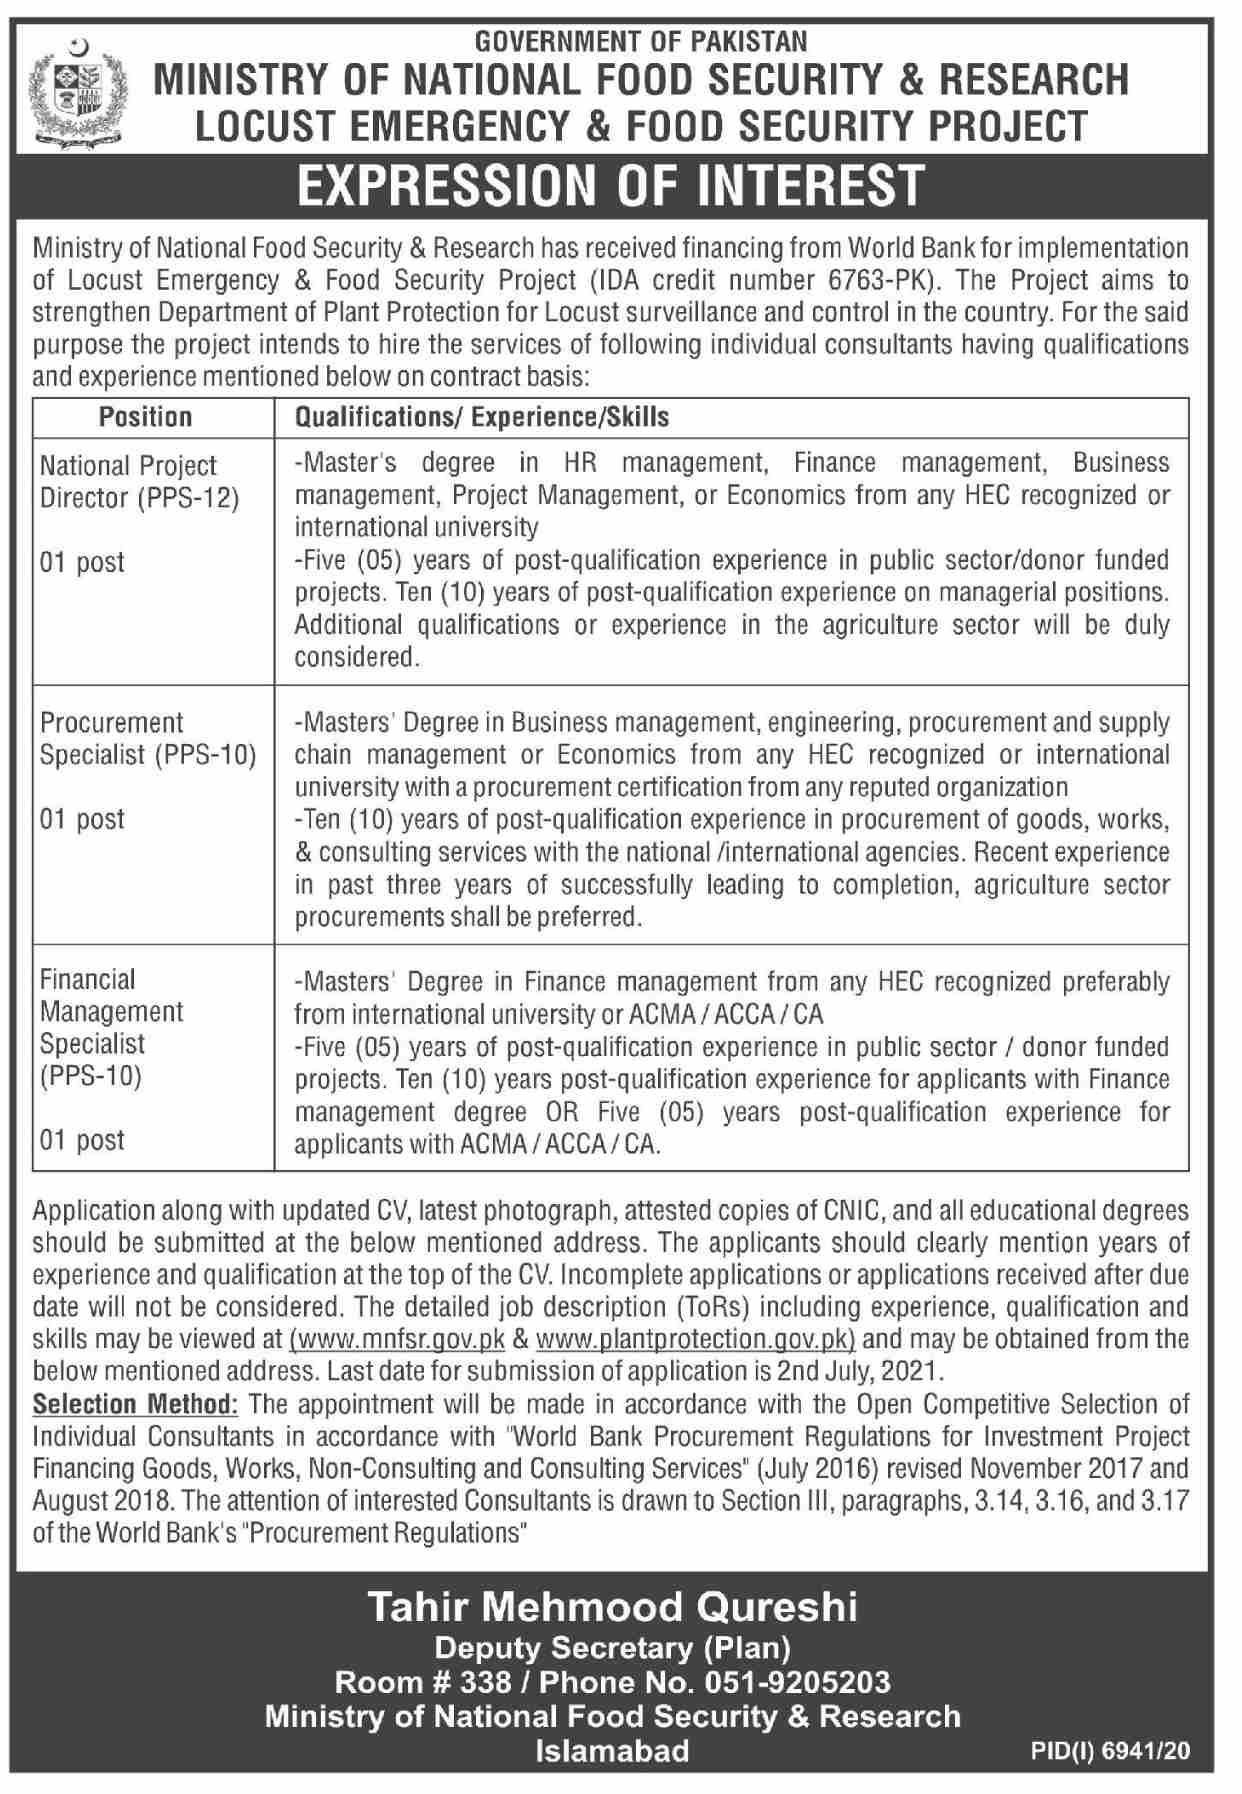 Ministry of National Food Security & Research Jobs June 2021